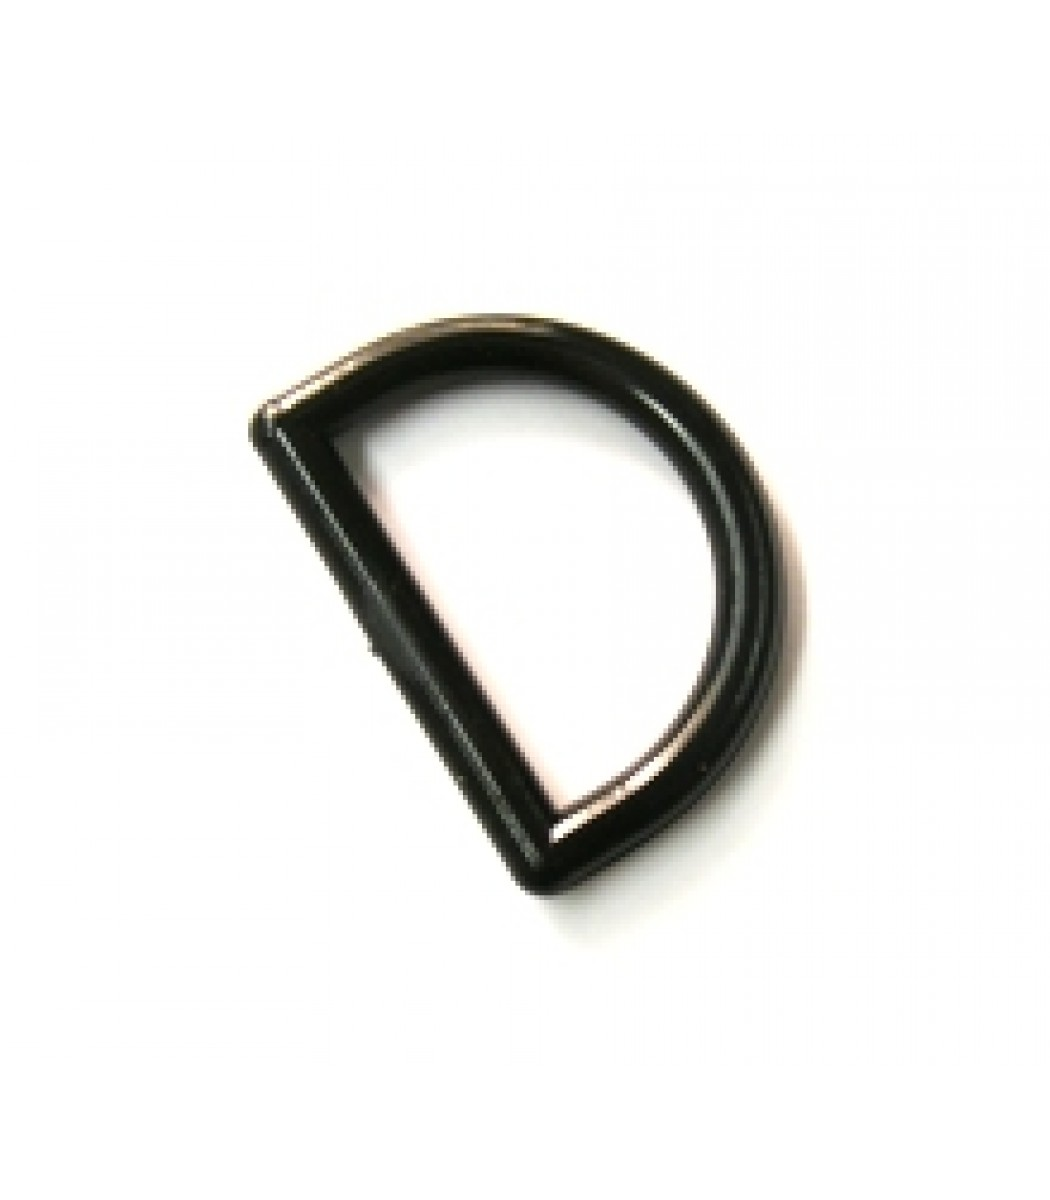 aussie black strength gymnastics gym pair plastic rings